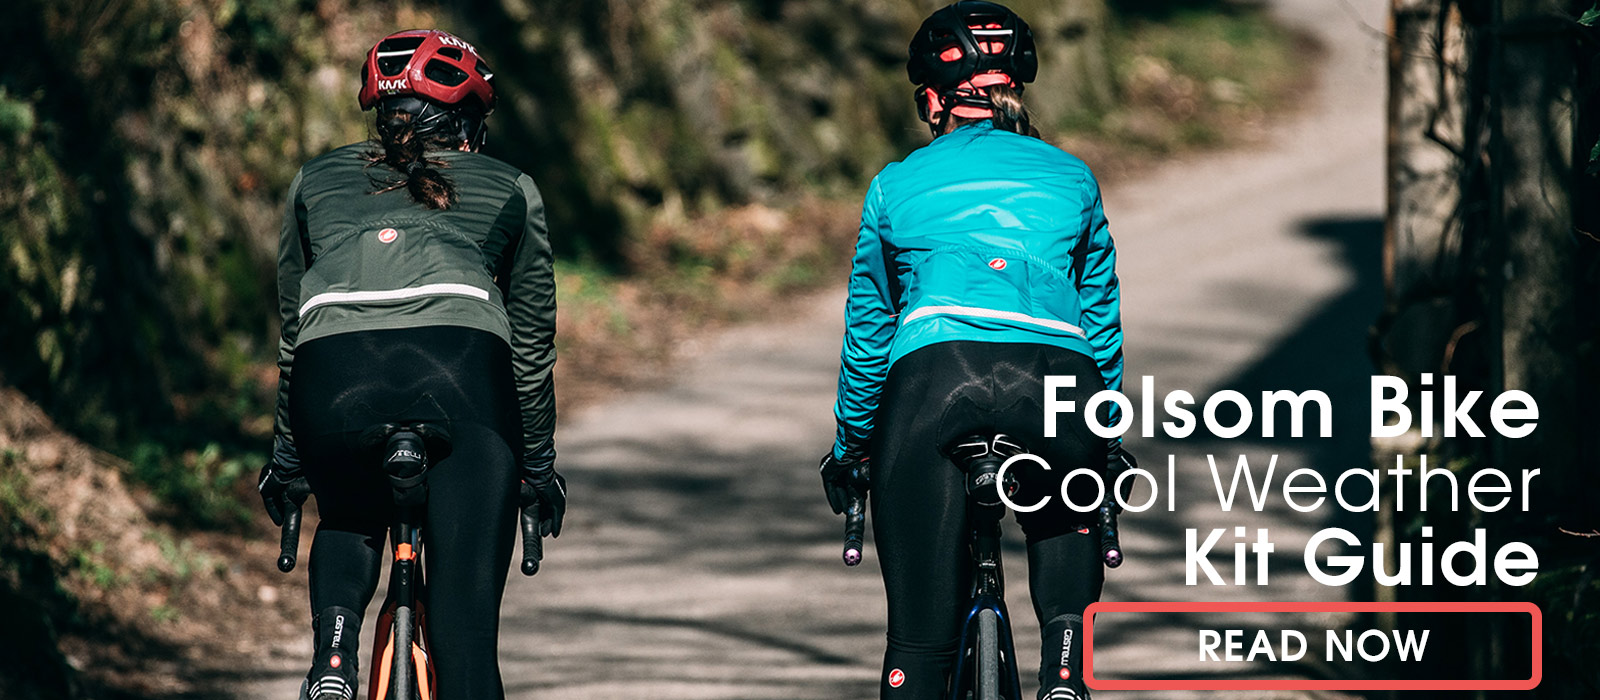 Cool weather cycling kit guide